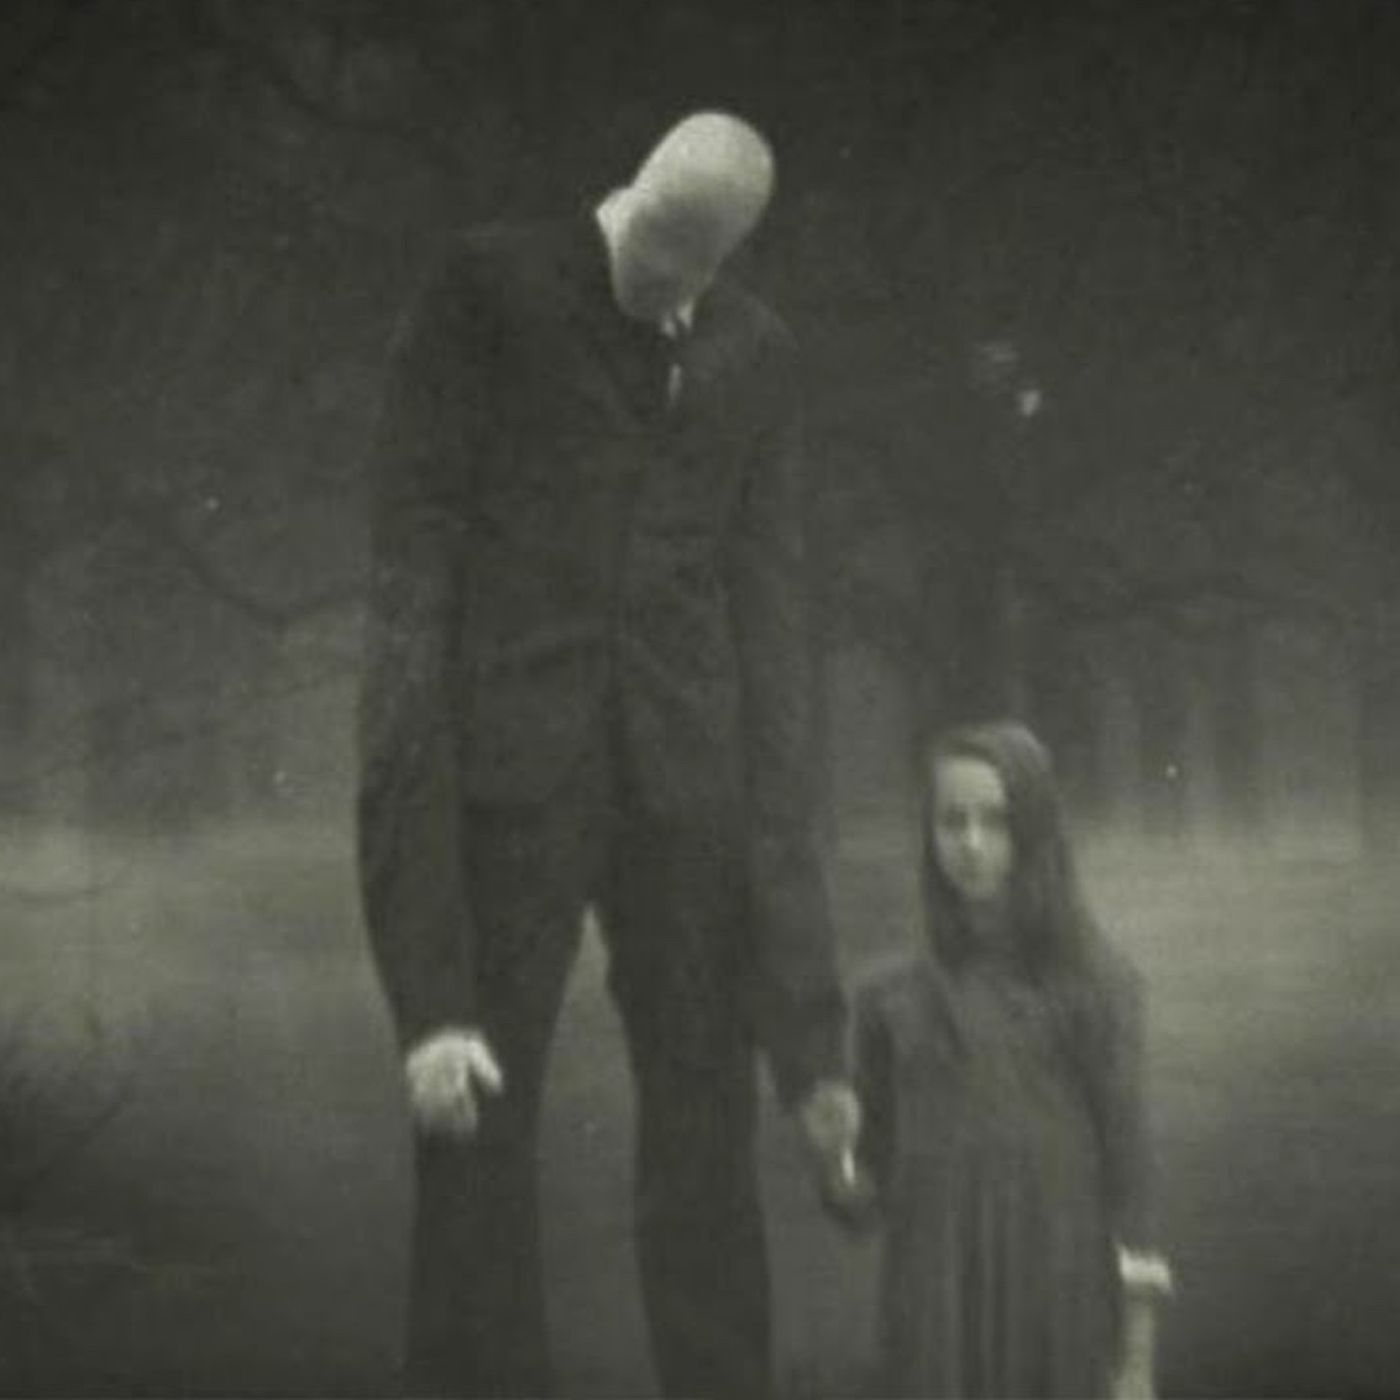 The failed Slender Man movie was a nail in the coffin of a dying